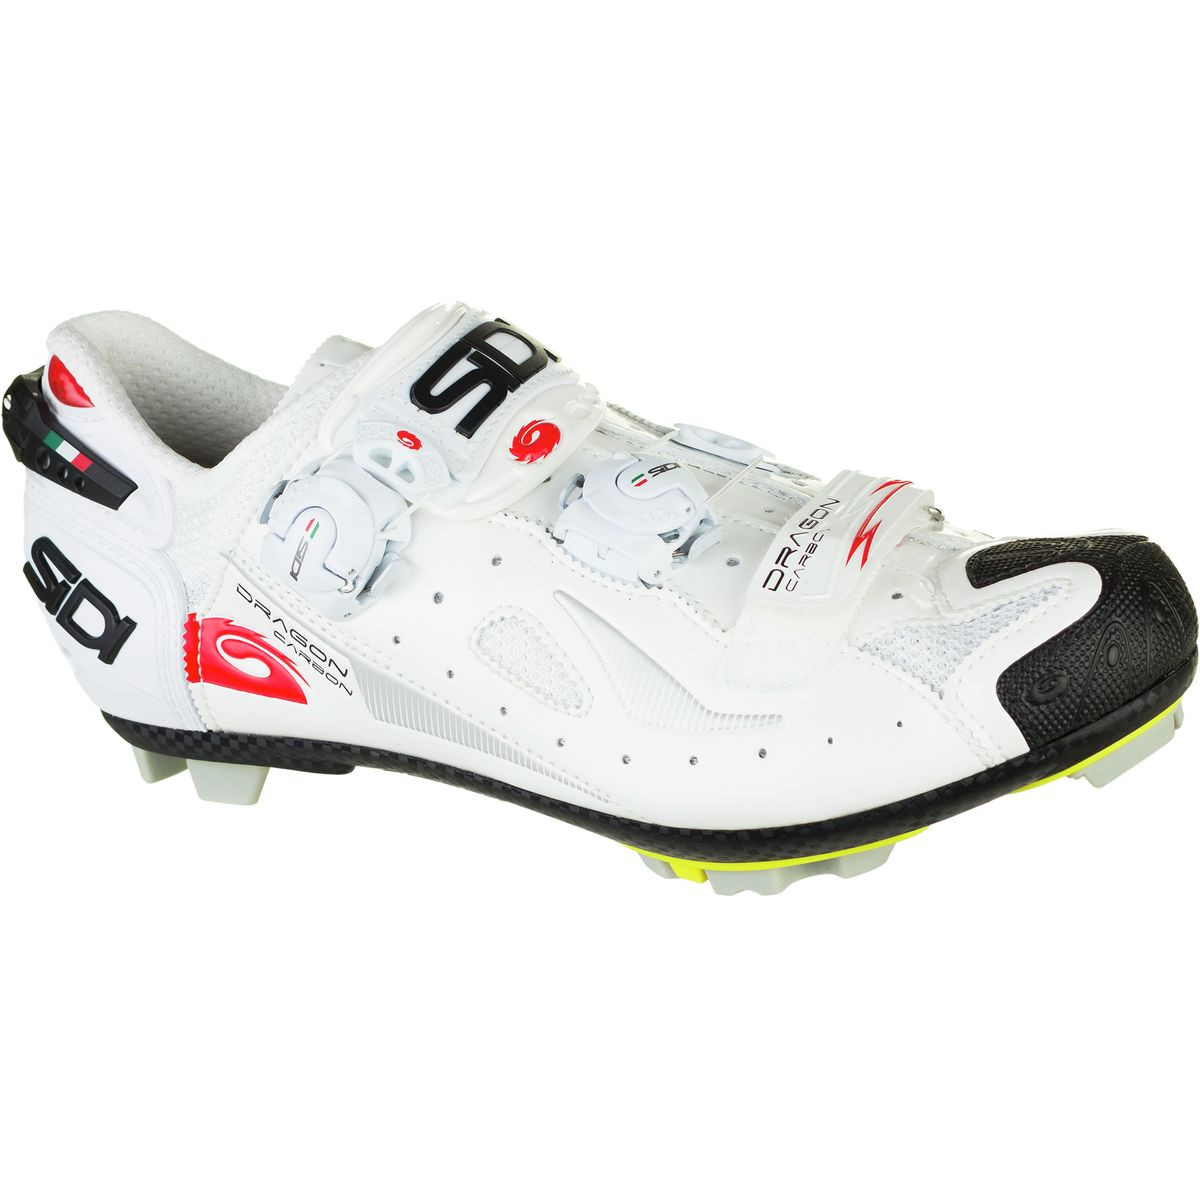 Sidi Dragon 4 Shoe Mens